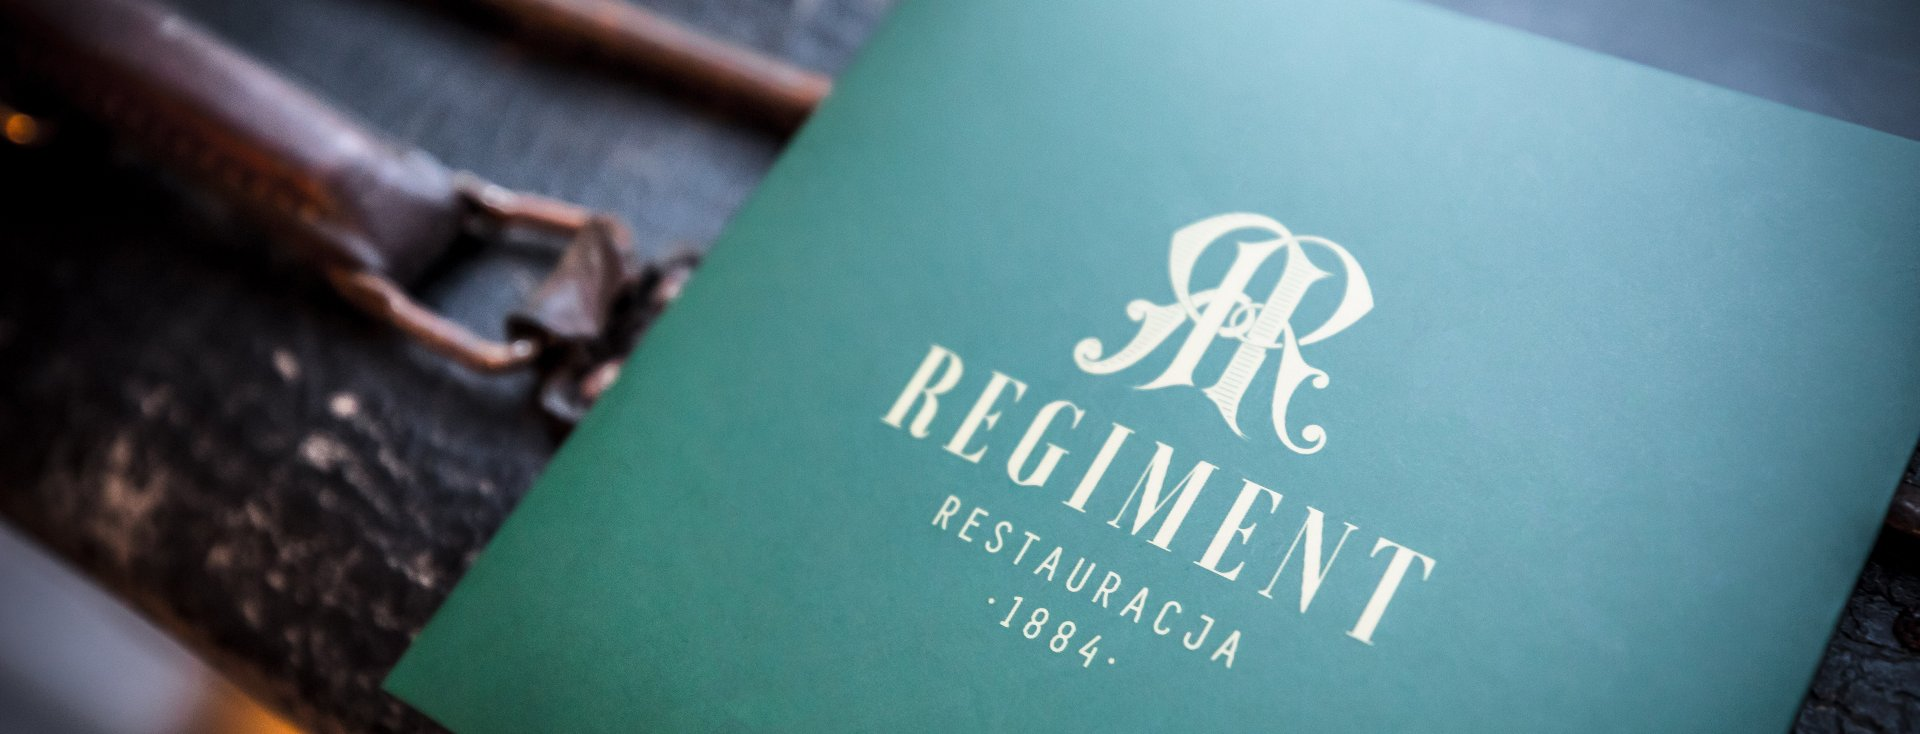 Voucher do Restauracji Regiment